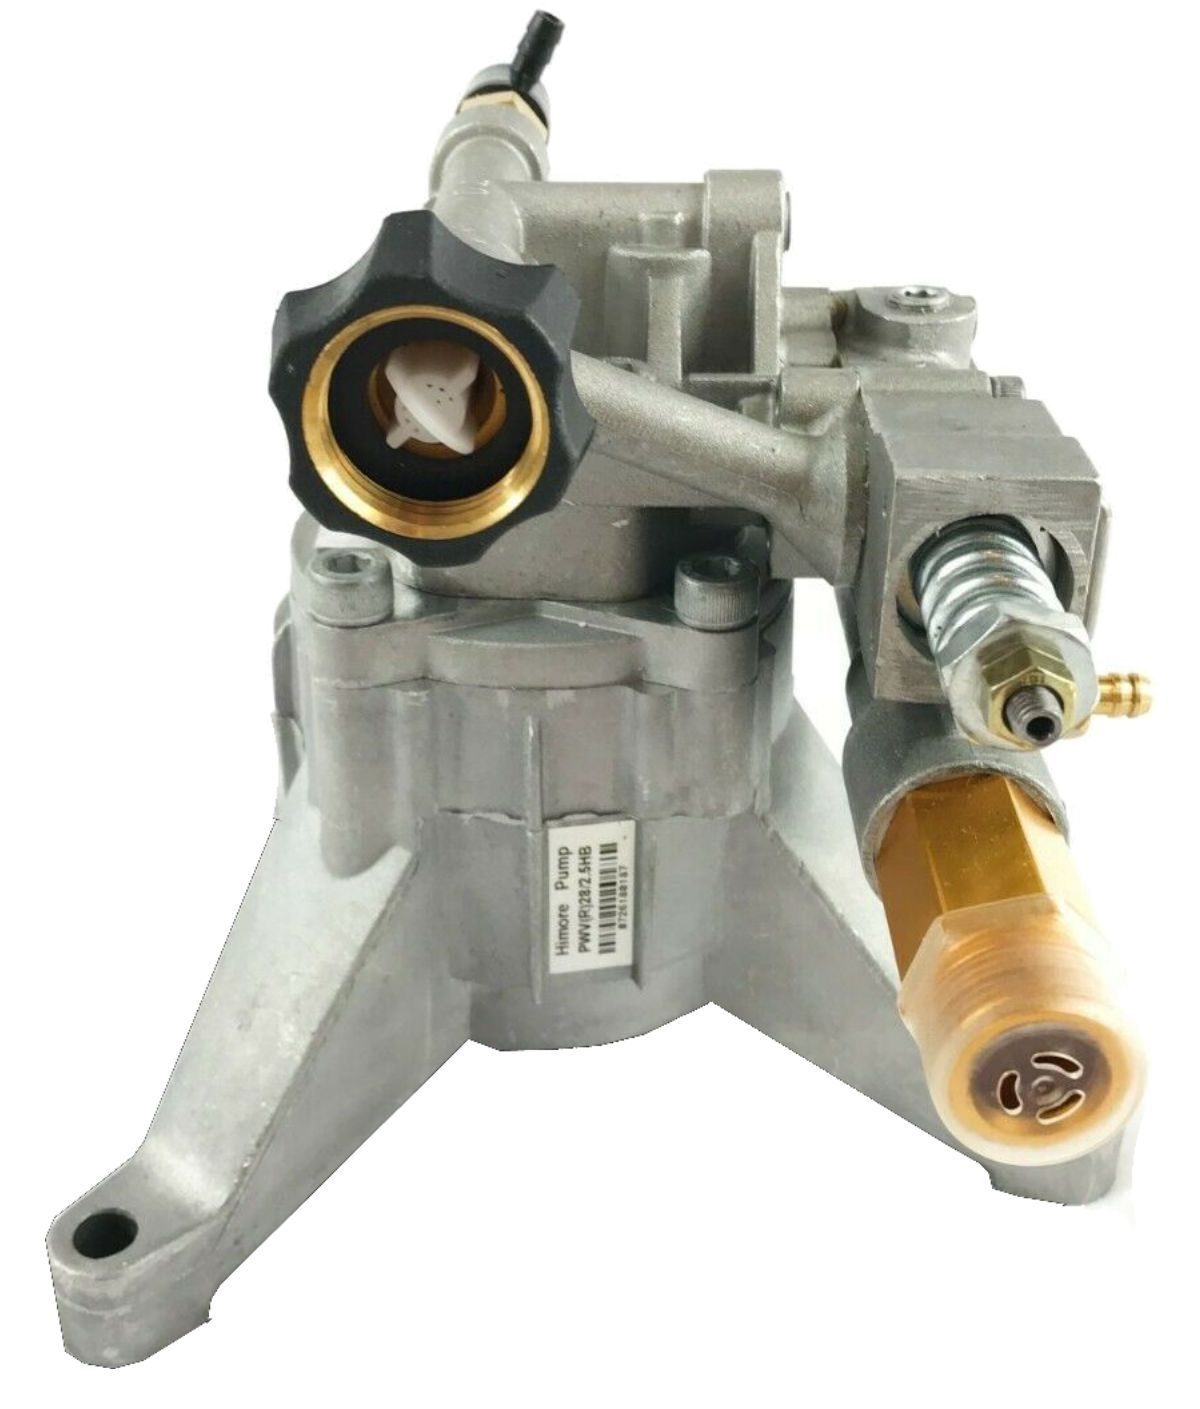 2700 PSI PRESSURE WASHER WATER PUMP Sears Craftsman 580.672200 580.676631 - AE-Power